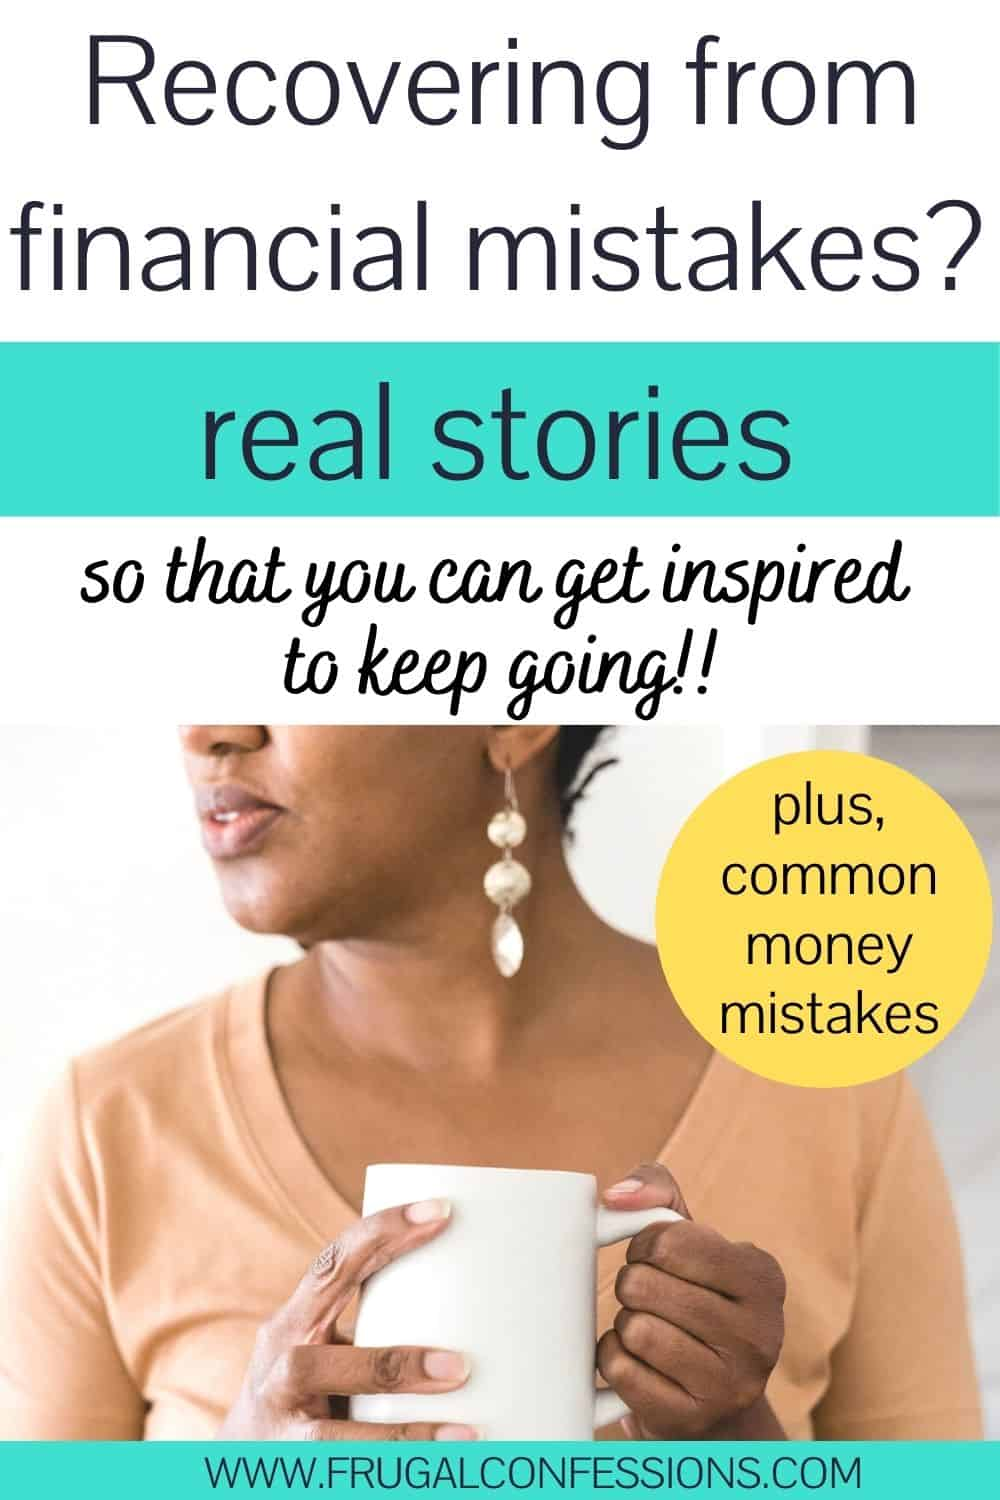 """woman with hand around mug, looking to left, text overlay """"recovering from financial mistakes? Real stories to inspire you to keep going"""""""